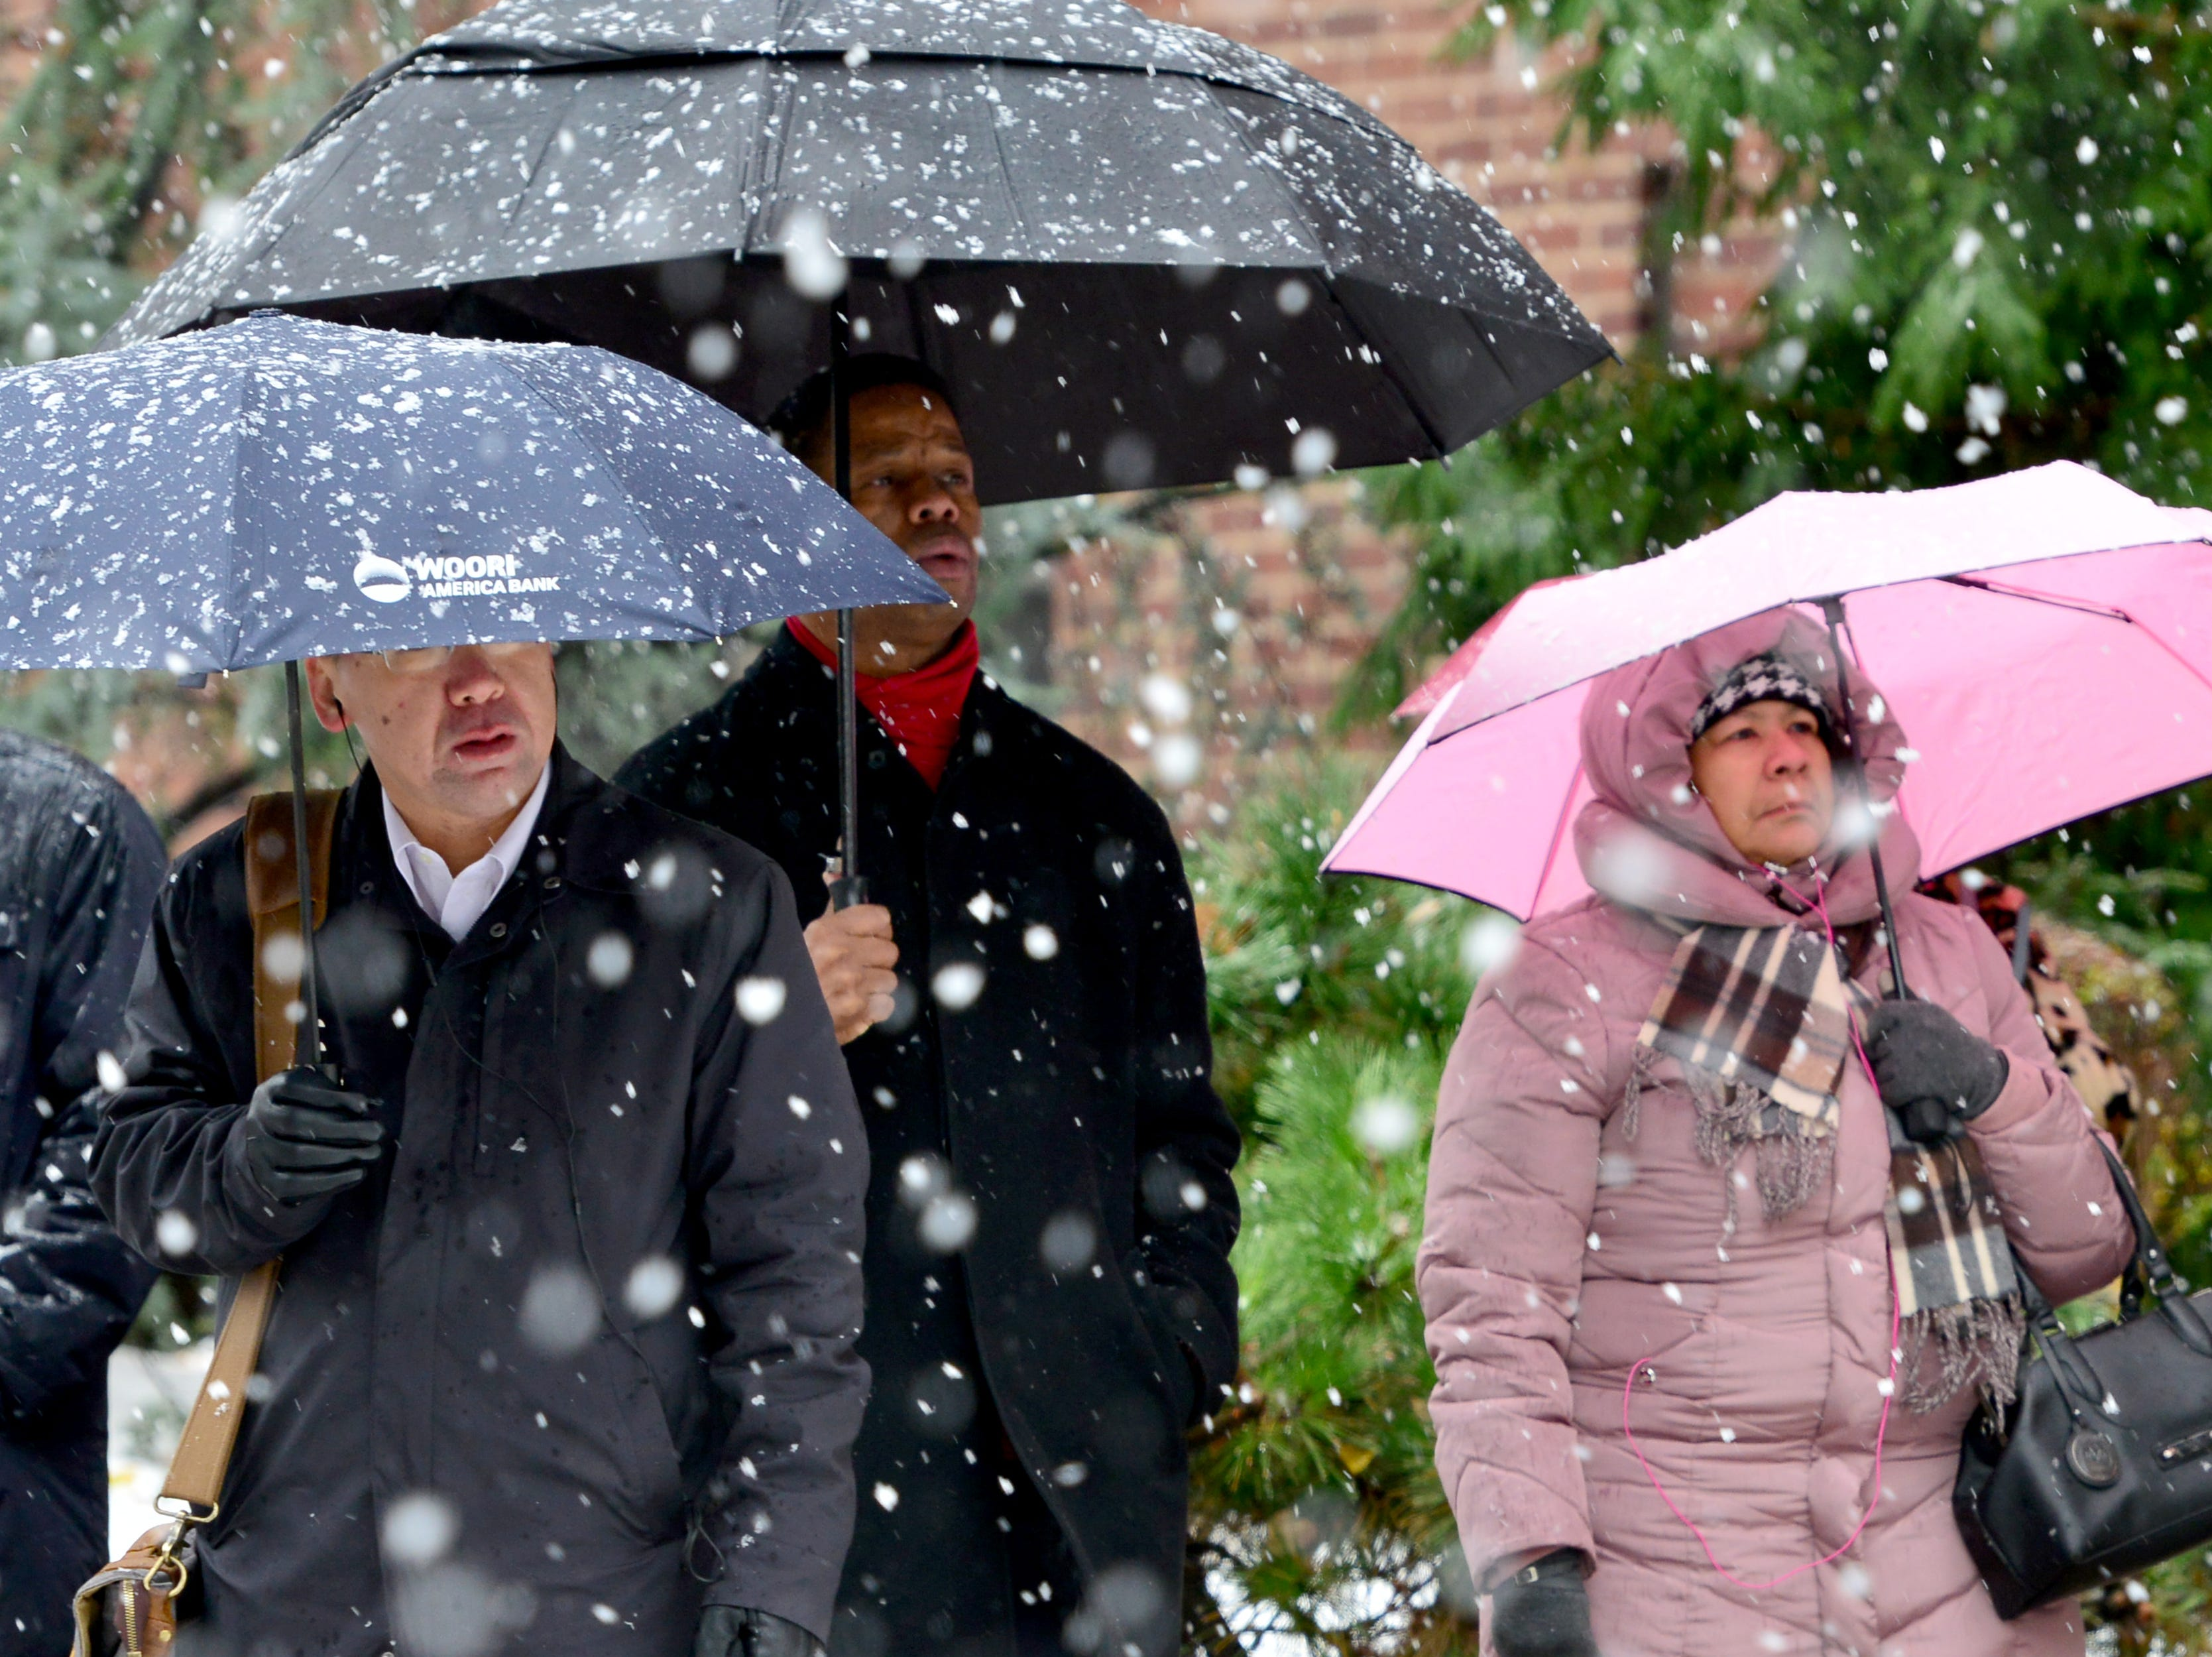 NJ weather: Snow showers expected for Thursday morning's commute